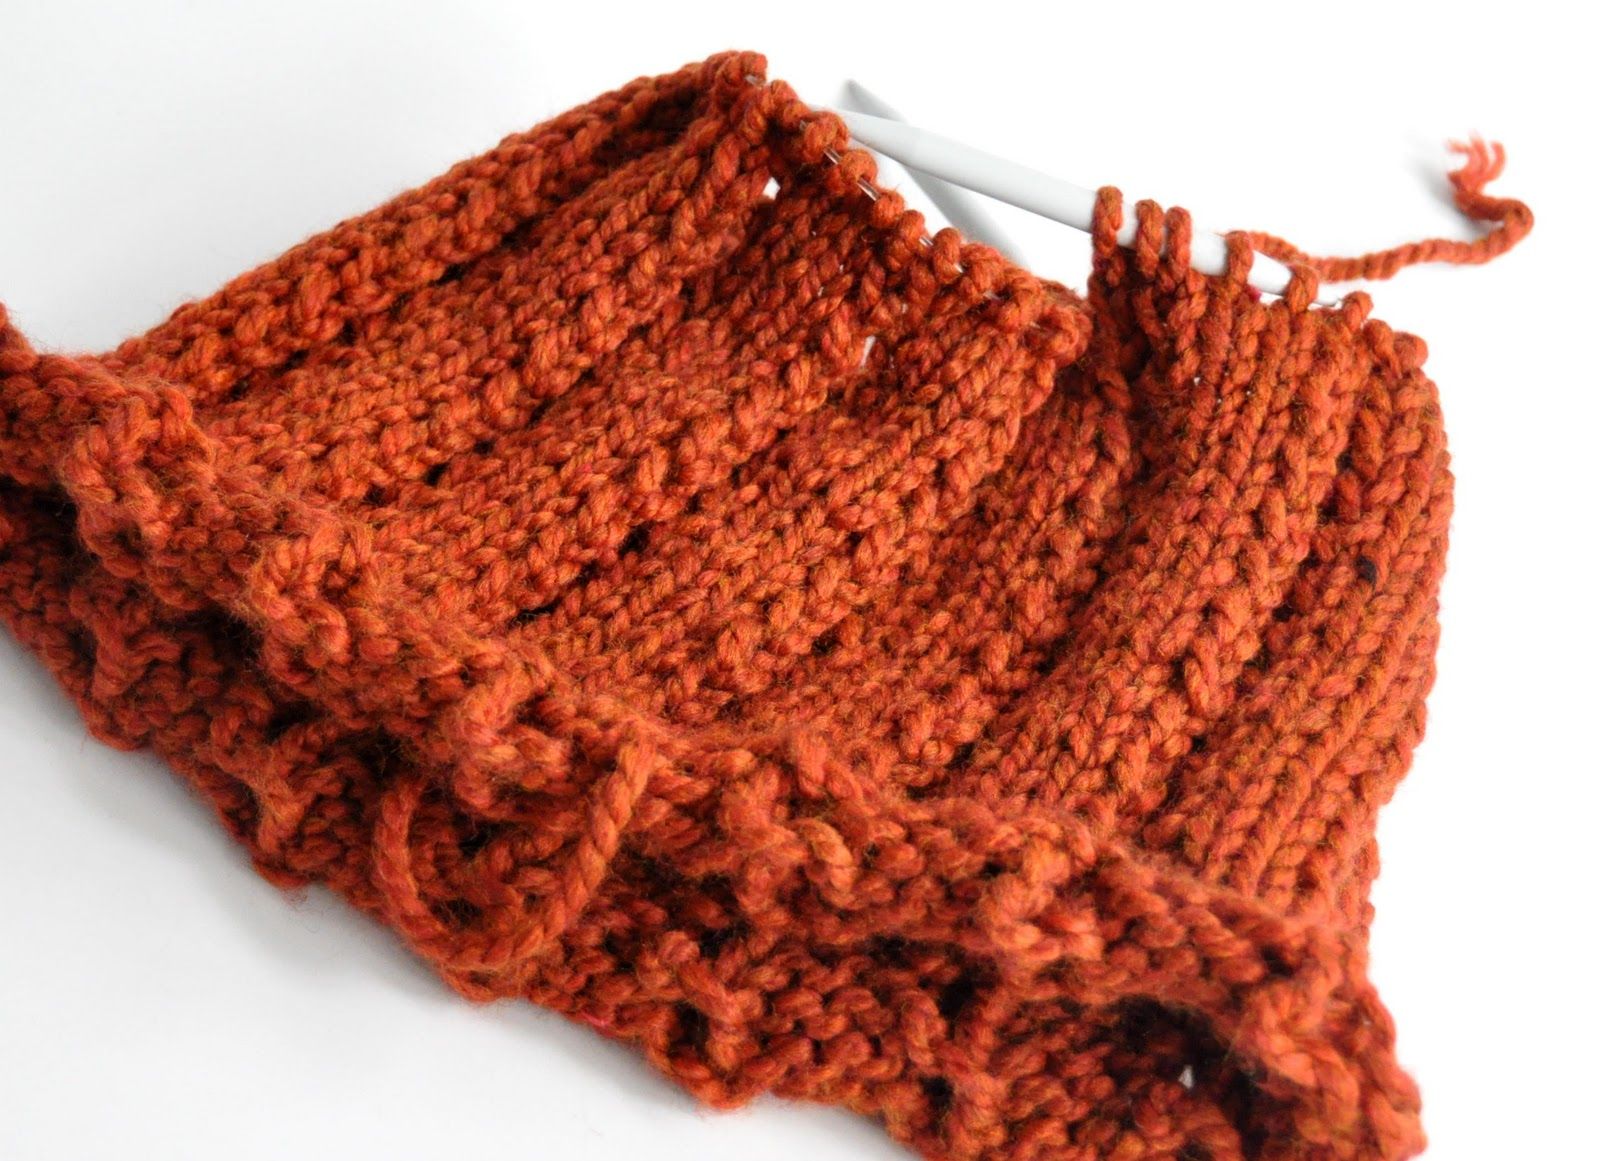 Knitting Yarn Over Continental Style : Aesthetic nest knitting country cowl tutorial